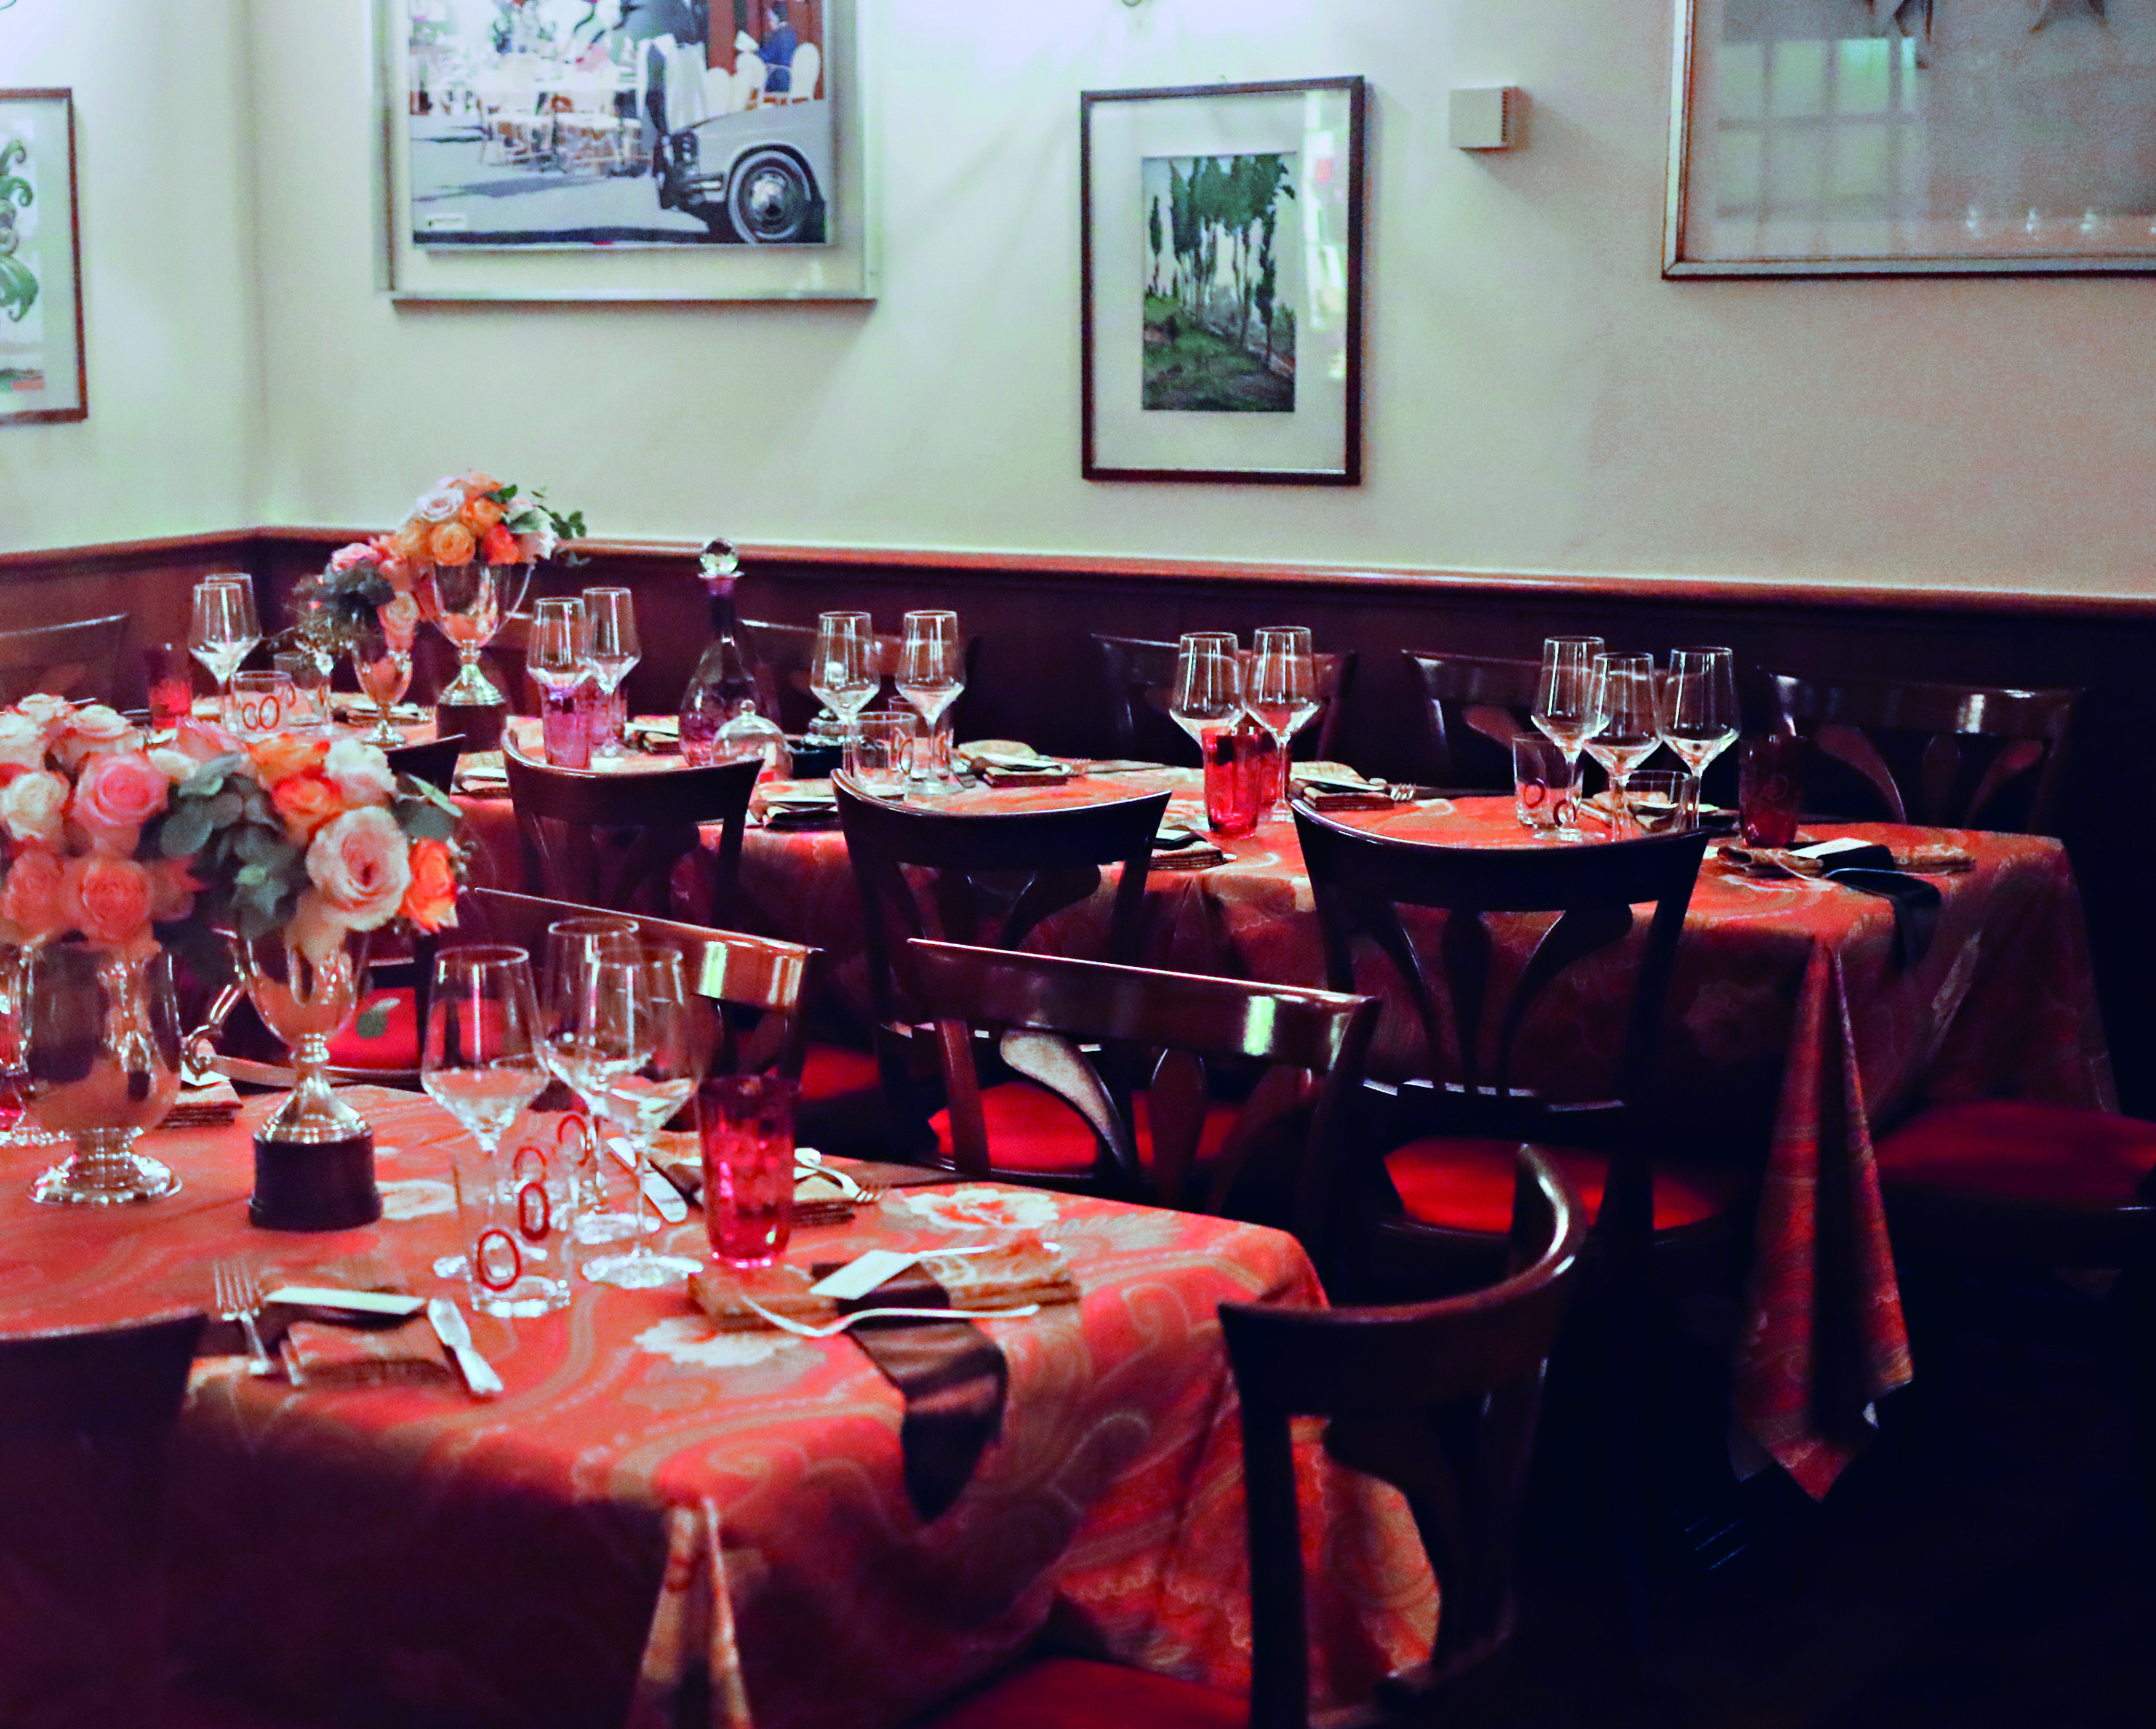 The Etro set up for the Bice restaurant in Milan.